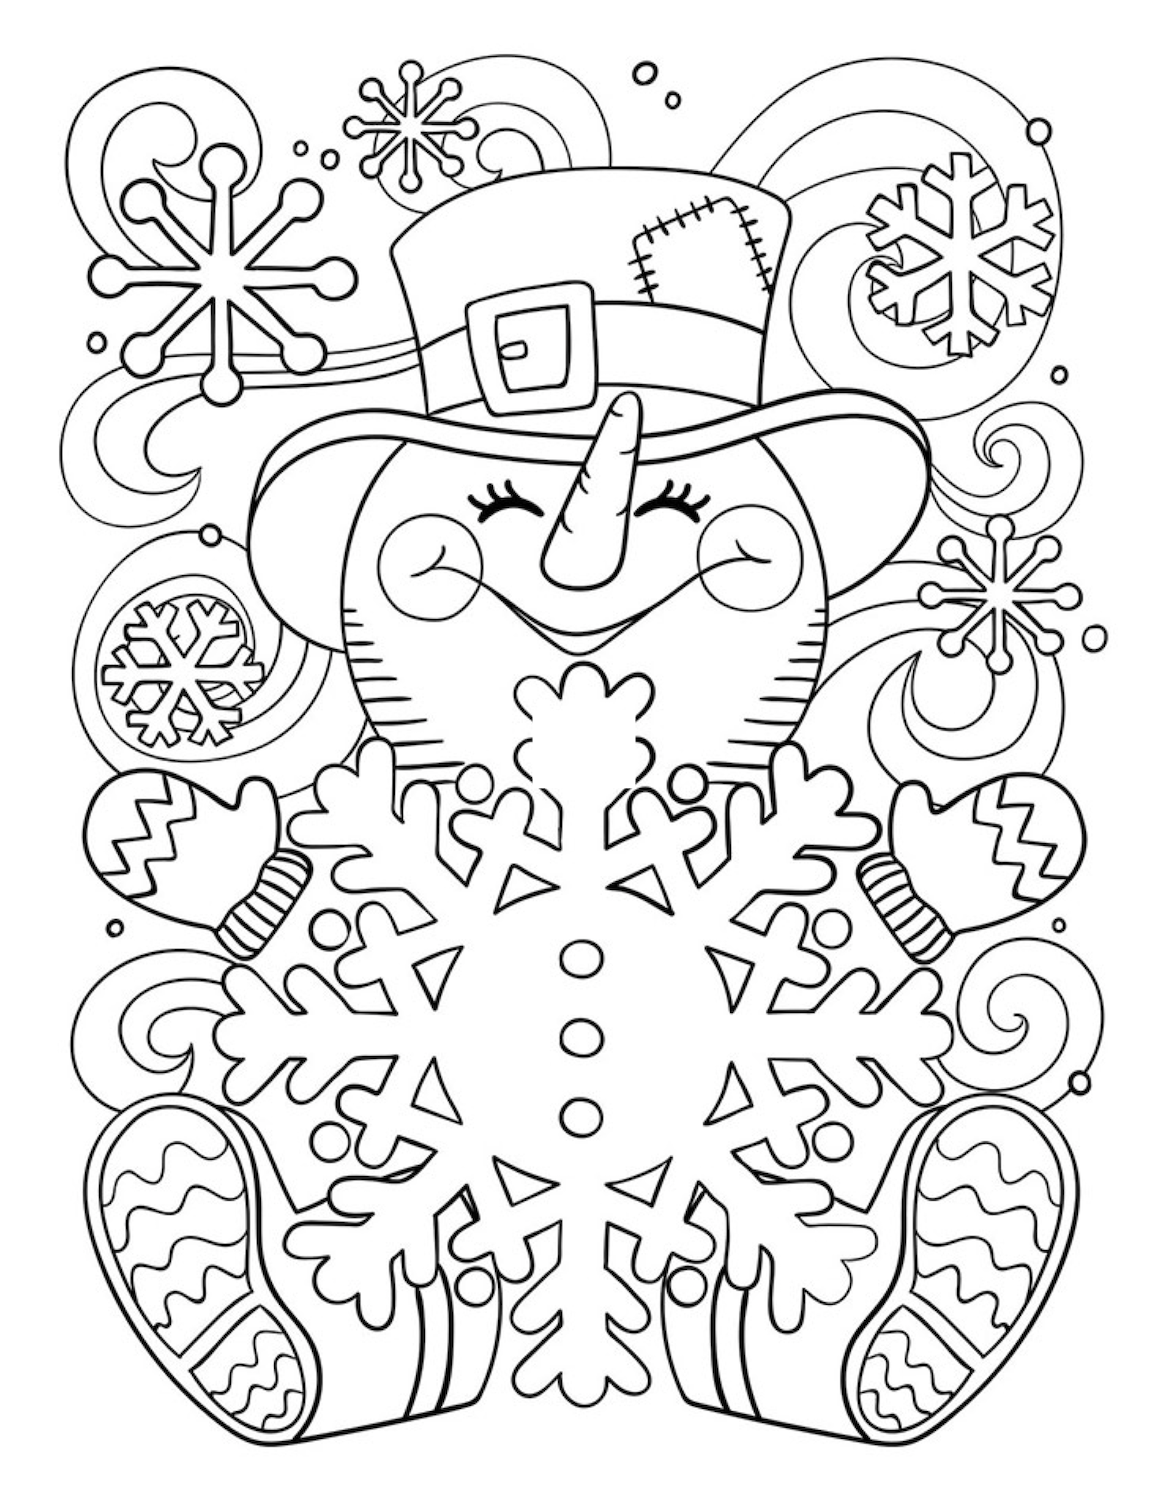 Cute Snowman Coloring Page Lots Of Beautiful Christmas Coloring Pages And Snowman Coloring Pages Christmas Coloring Sheets Printable Christmas Coloring Pages